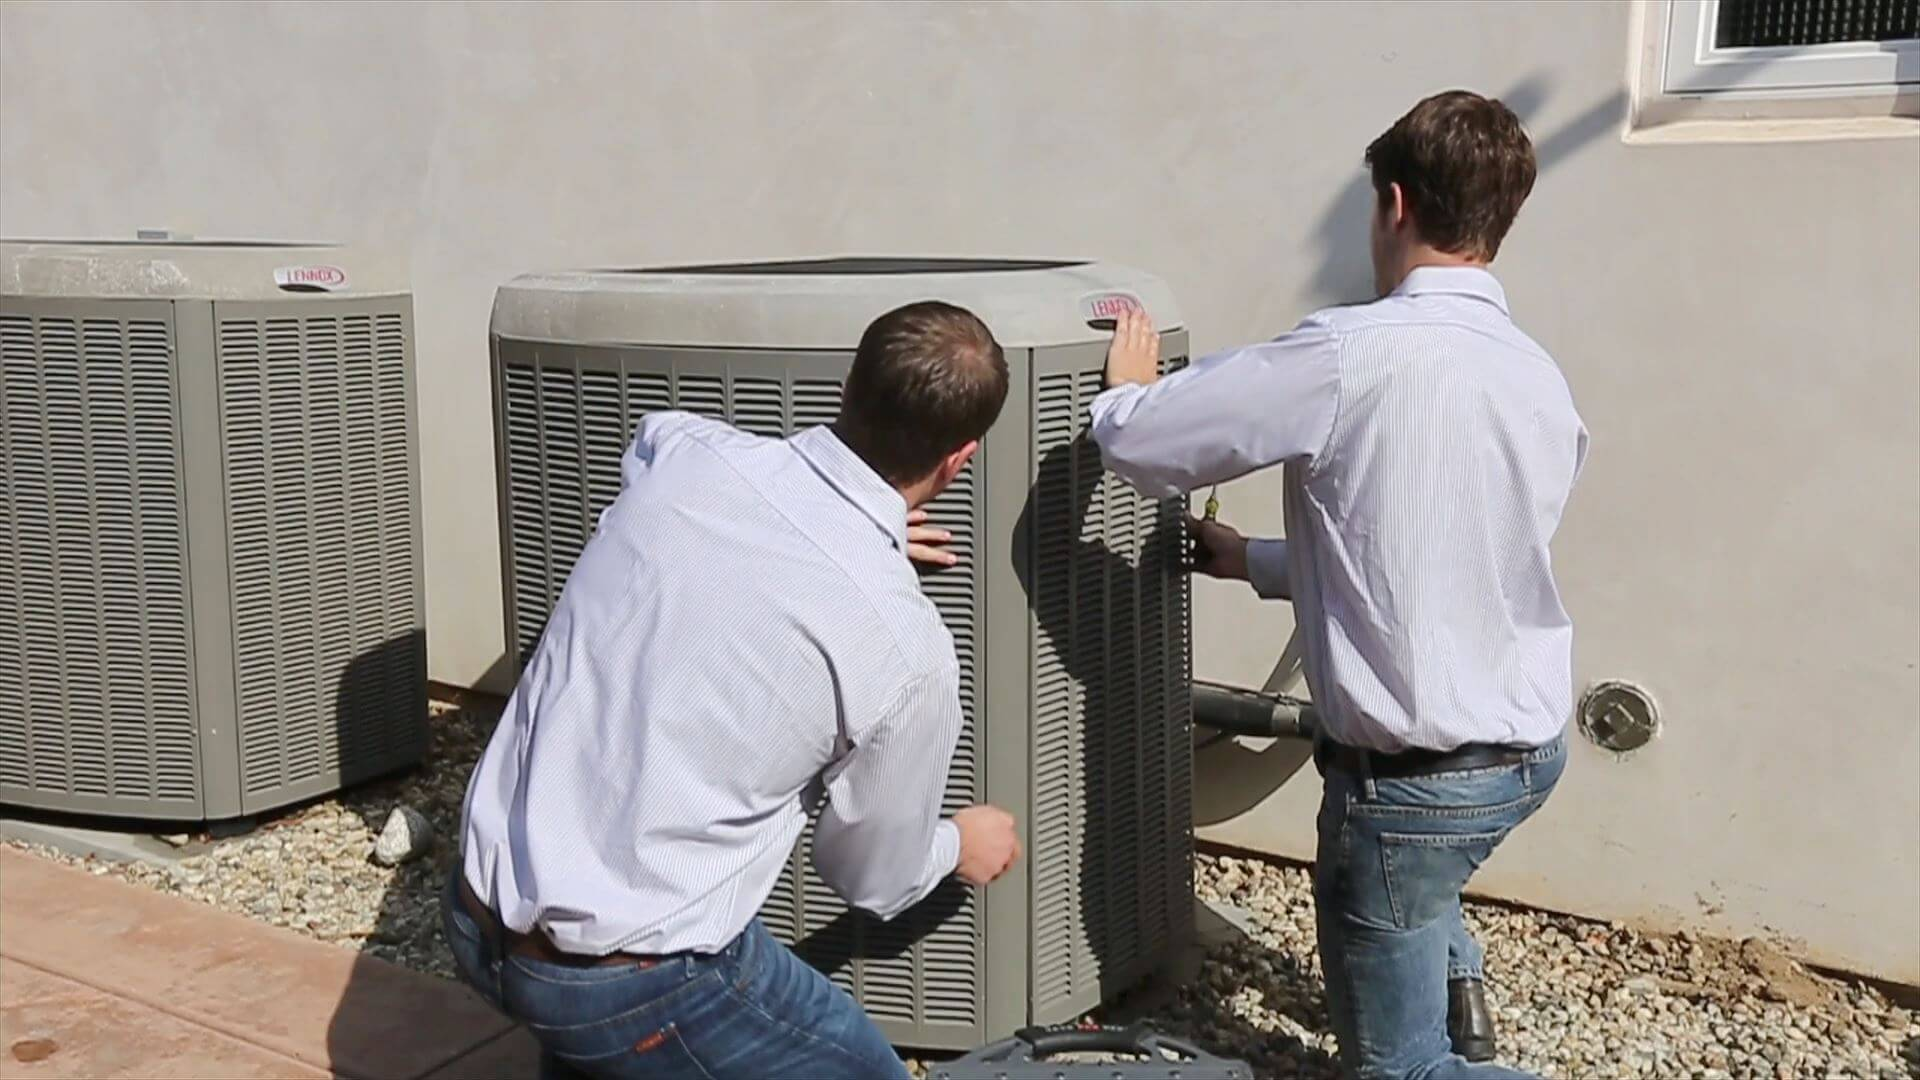 Air Condition Repair Near Me Miami beach, FL 33140